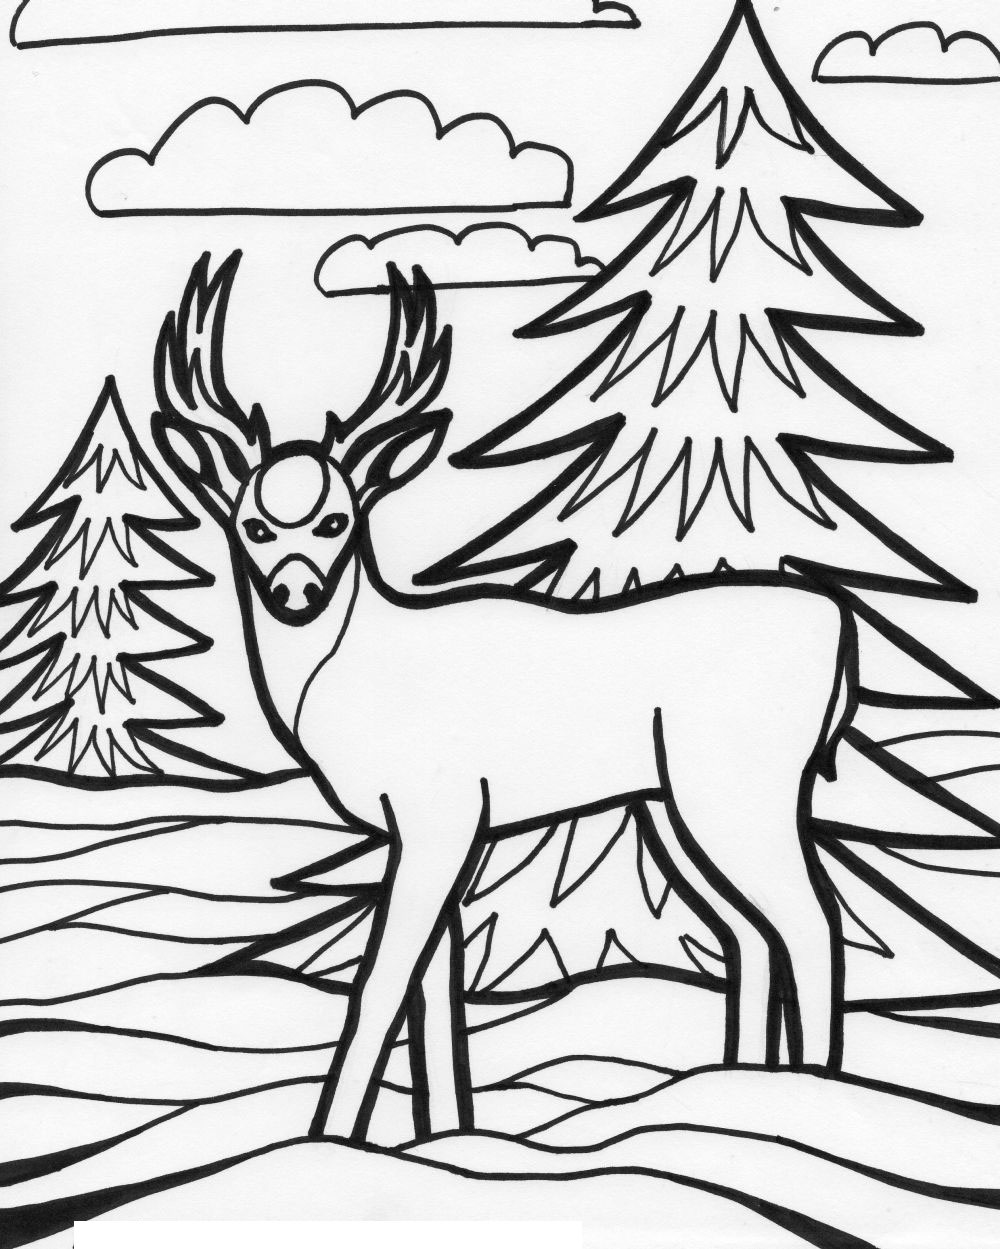 Coloring pages Wildlife 222 coloring pages Edupics - free wild animal coloring pages